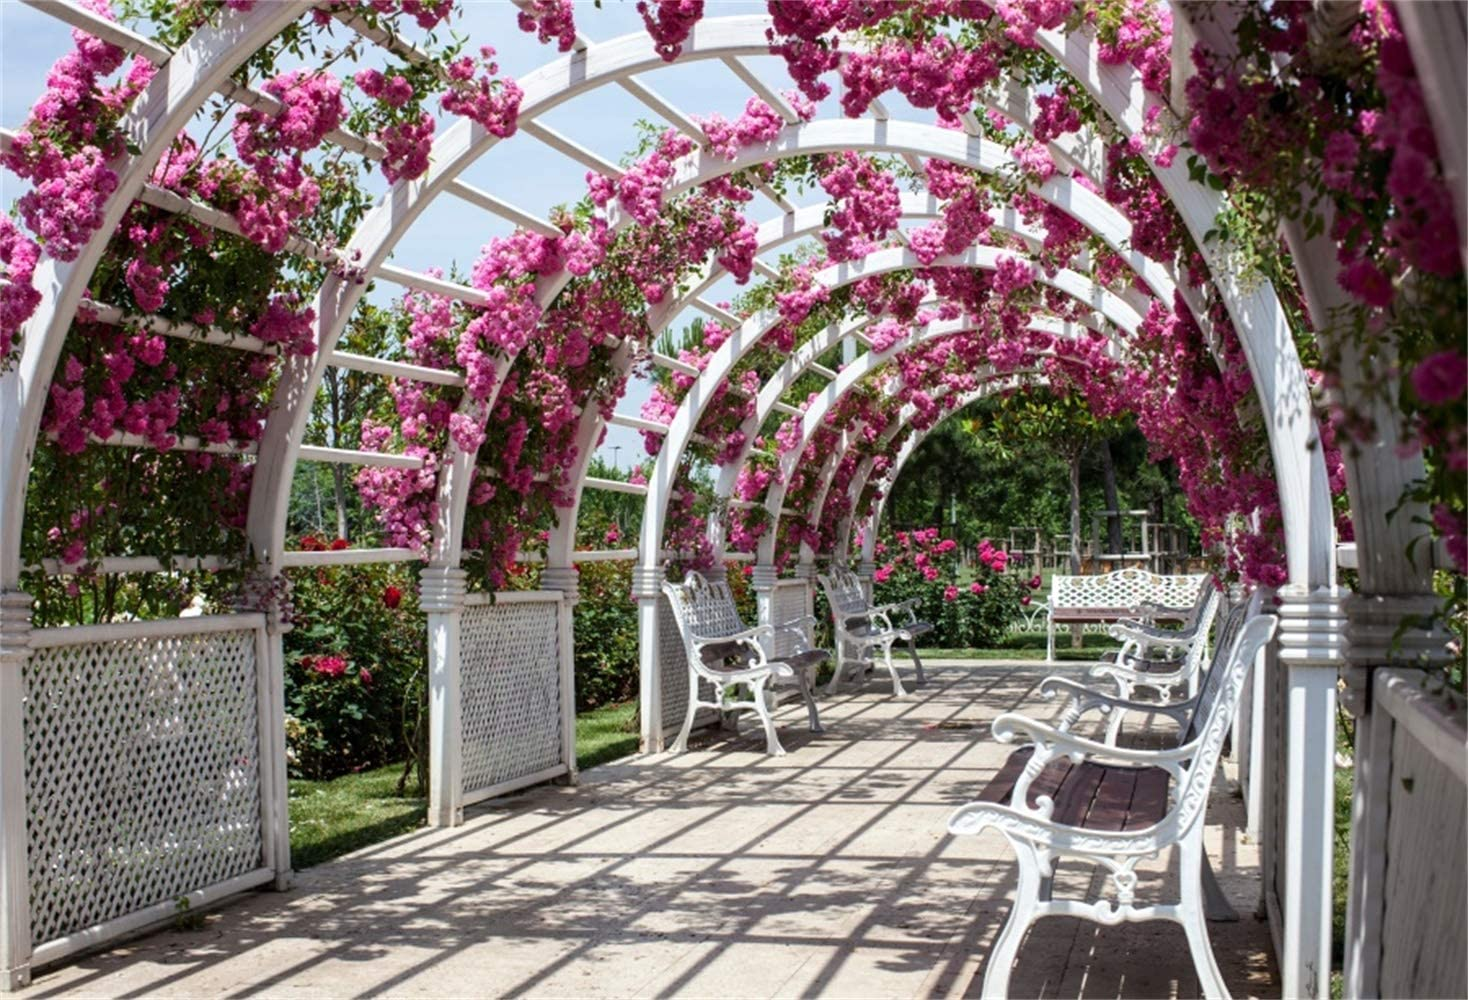 Wedding Photoshoot Backdrop 10x6.5ft Polyester Fantastic Fuchsia Floral Archway Pavilion White Benches Summer Garden Scenic Background Wedding Photo Booth Bride Groom Shoot Studio Props